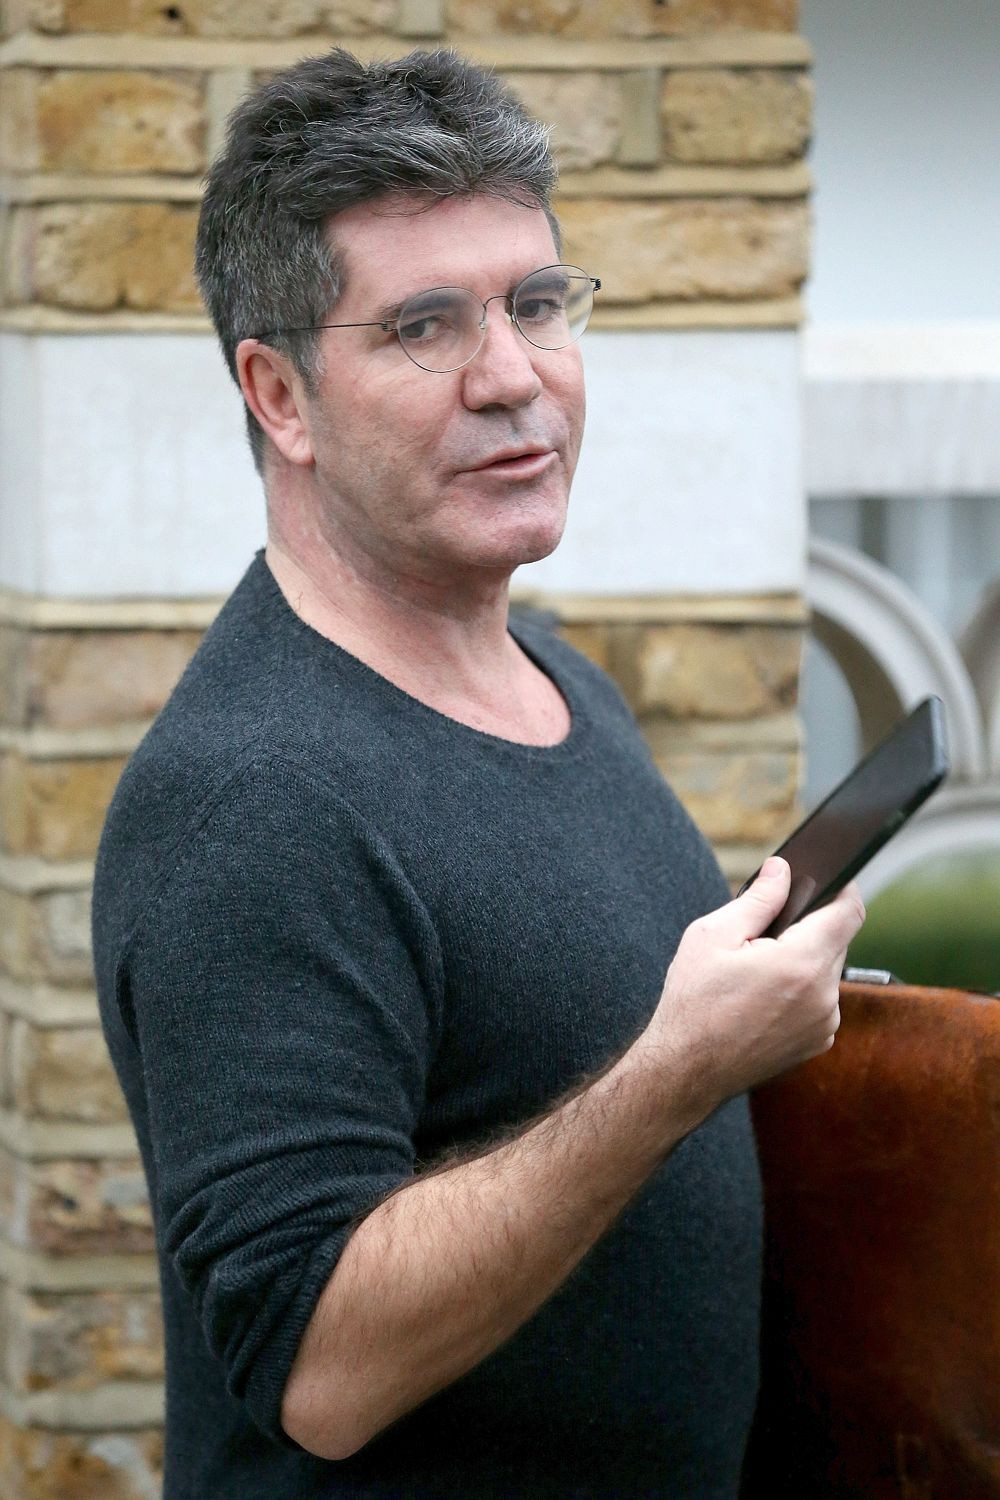 Simon Cowell outside his London home